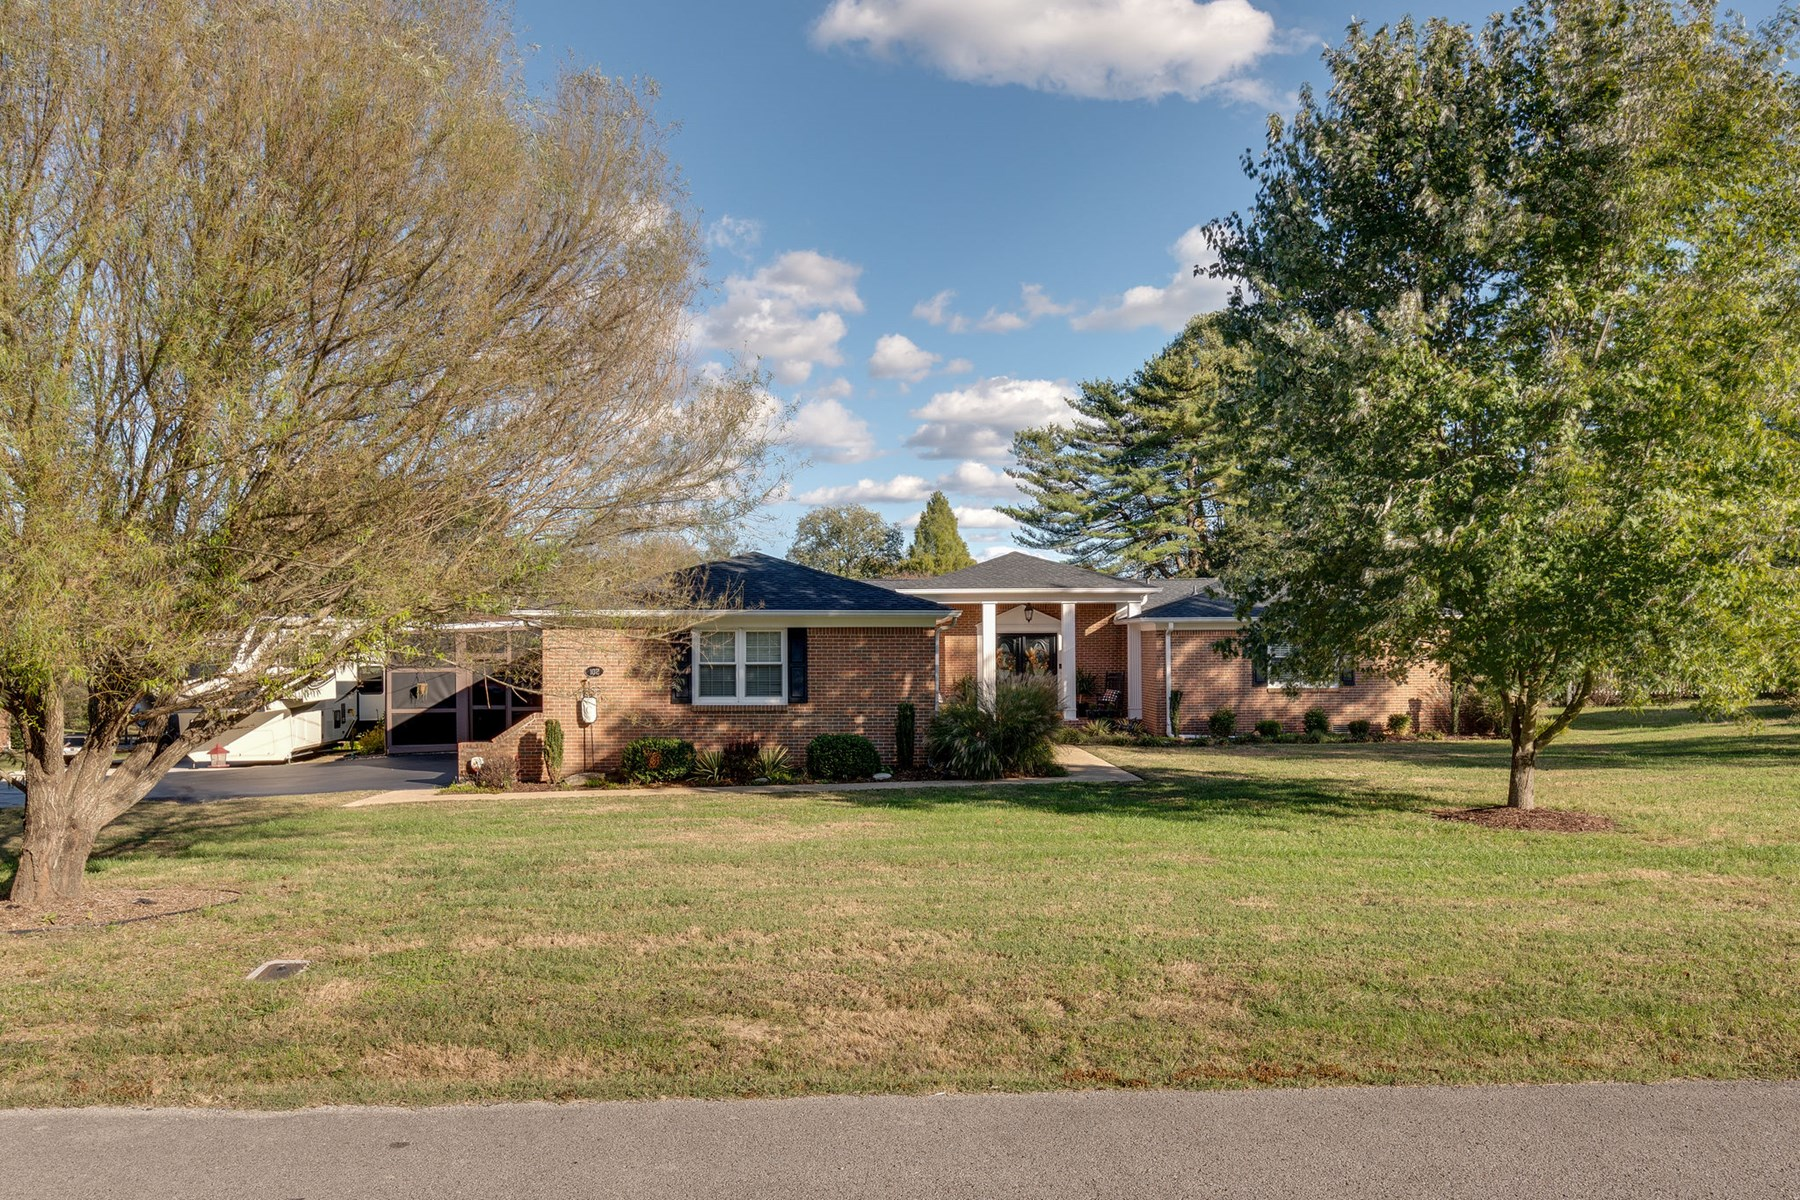 All Brick 4 Bedroom Home for Sale in Columbia, Tennessee